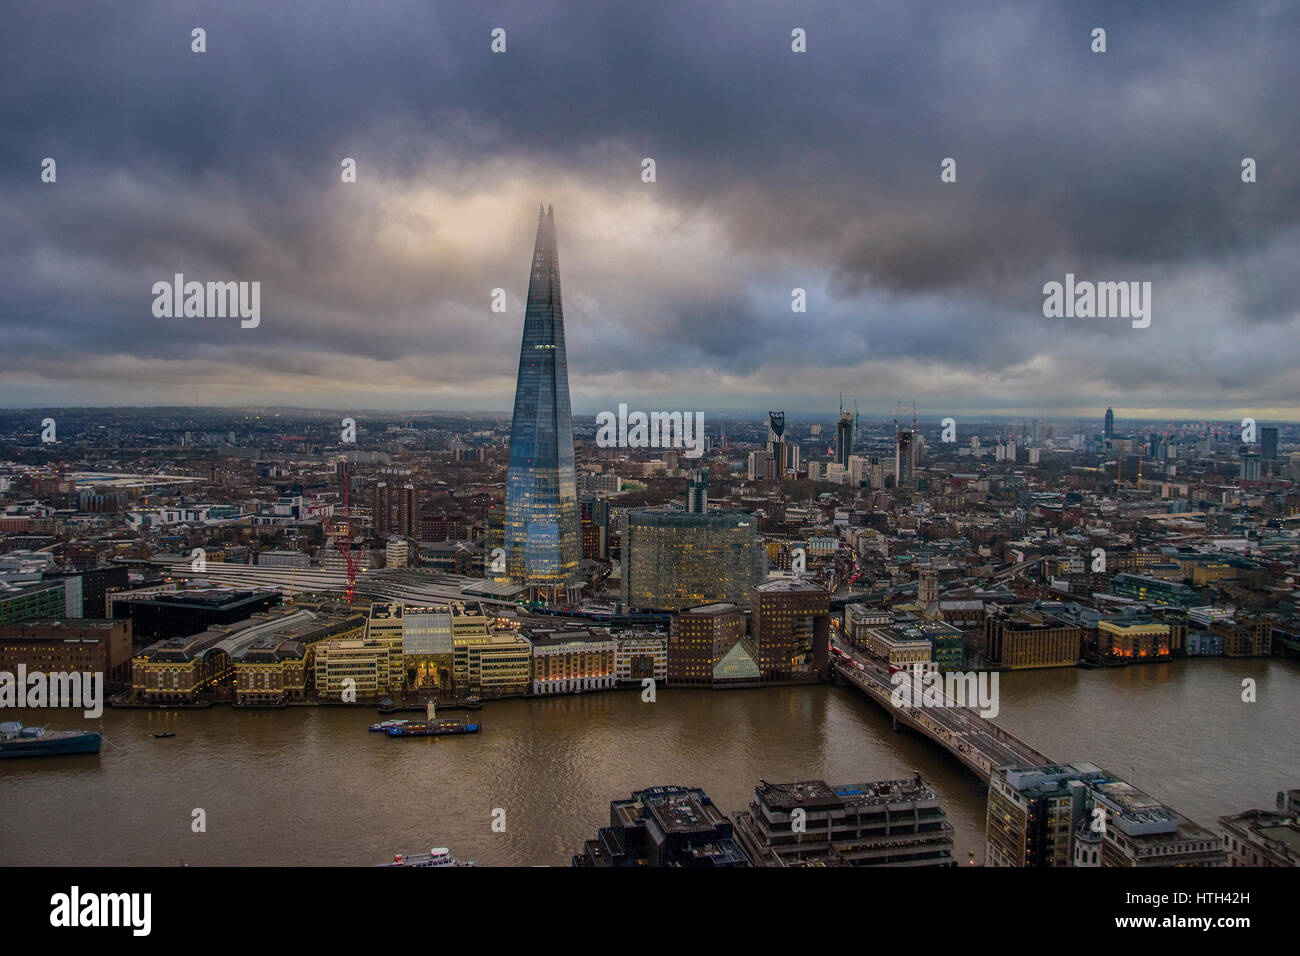 Panoramic aerial view of urban London with the Shard skyscraper and Thames river at sunset against a cloudy sky. - Stock Image